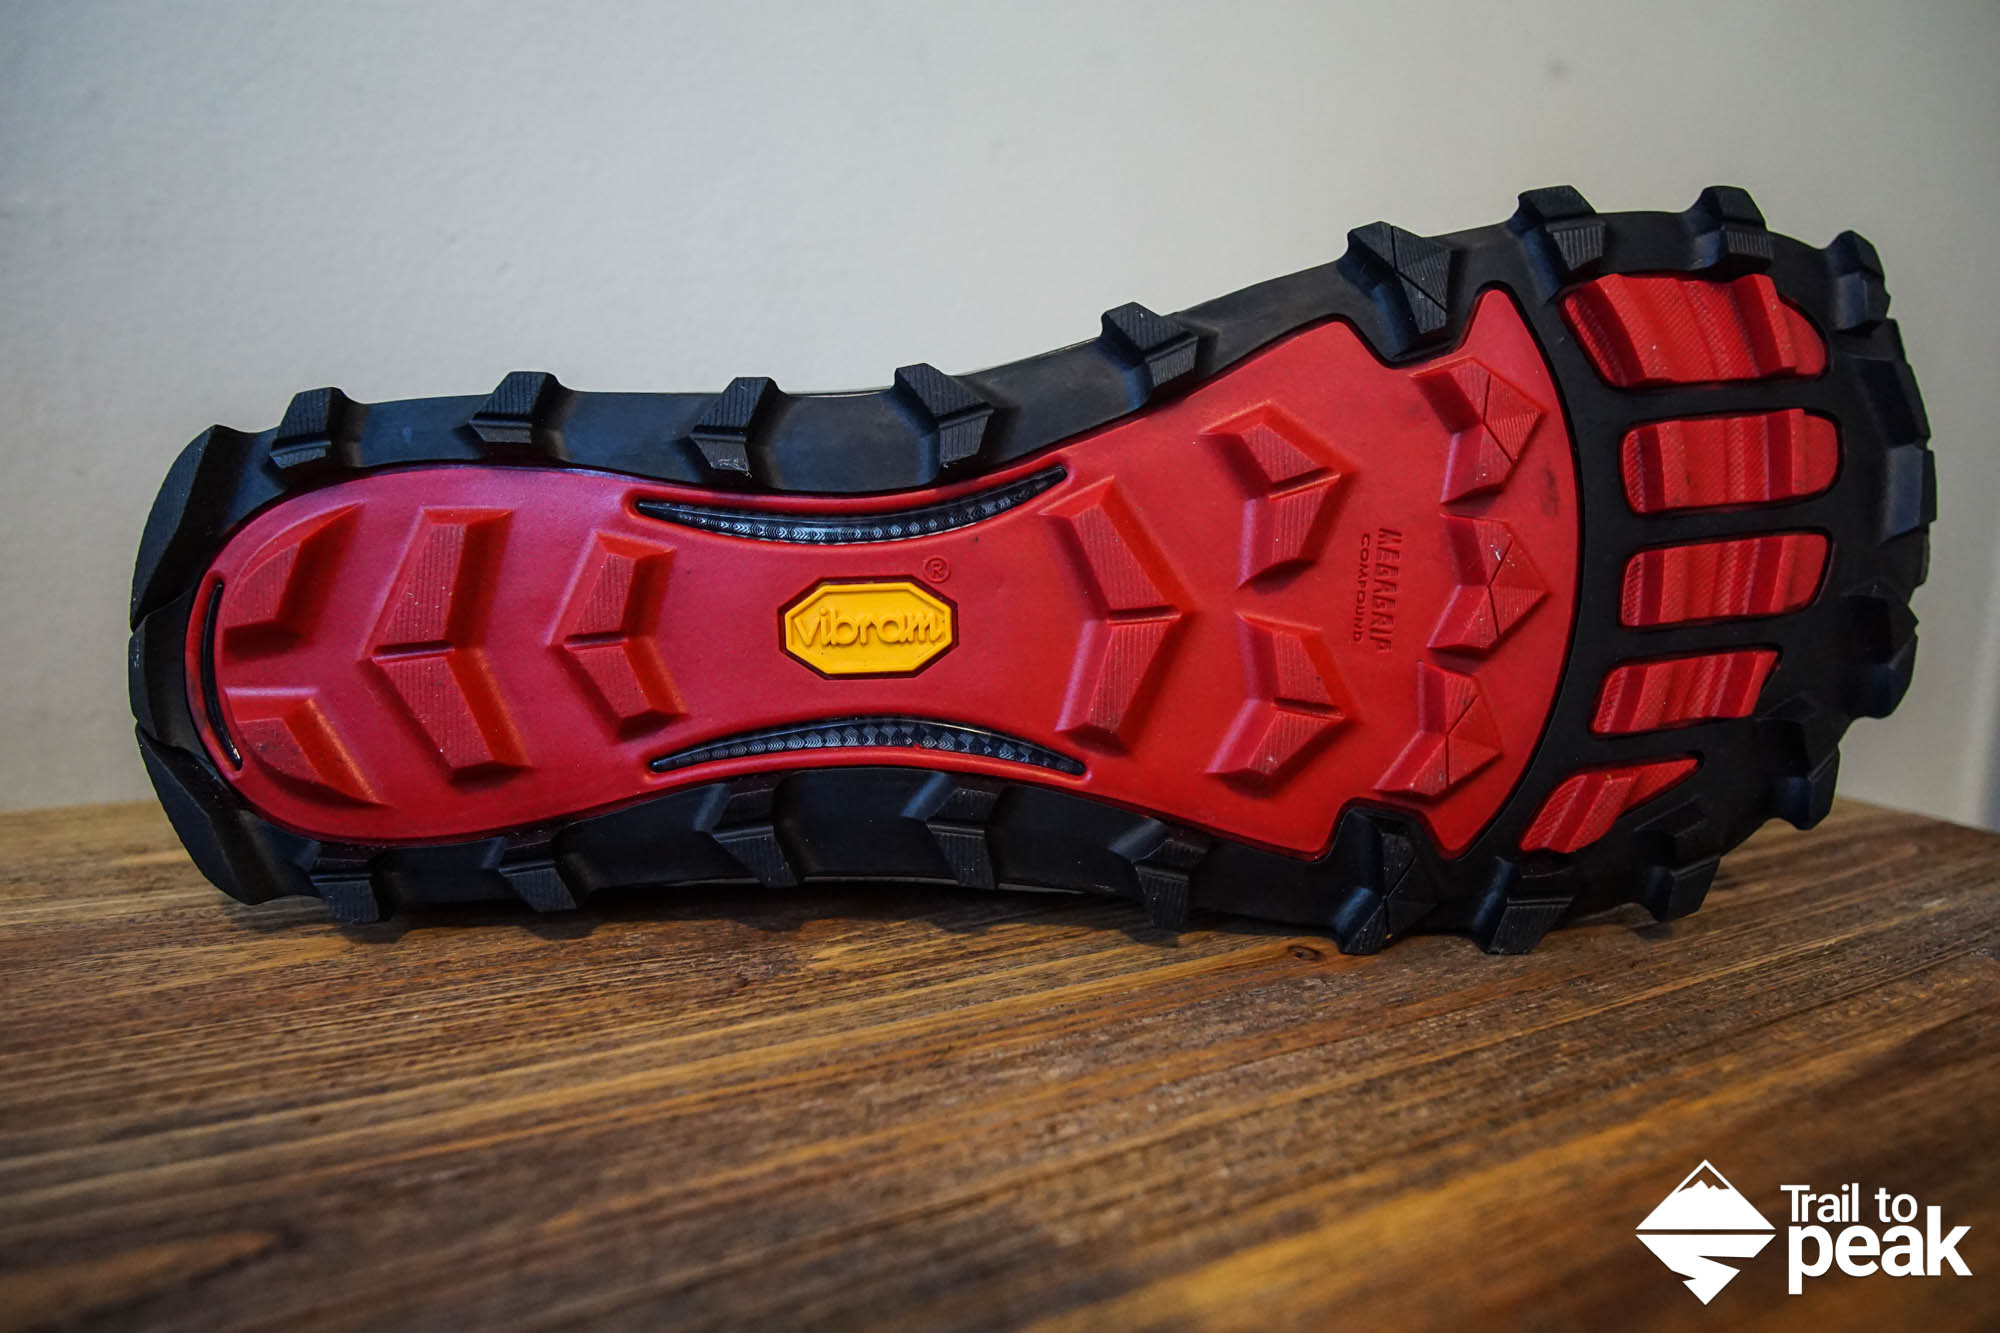 15 Most Exciting Trail Running And Lightweight Hiking Shoes